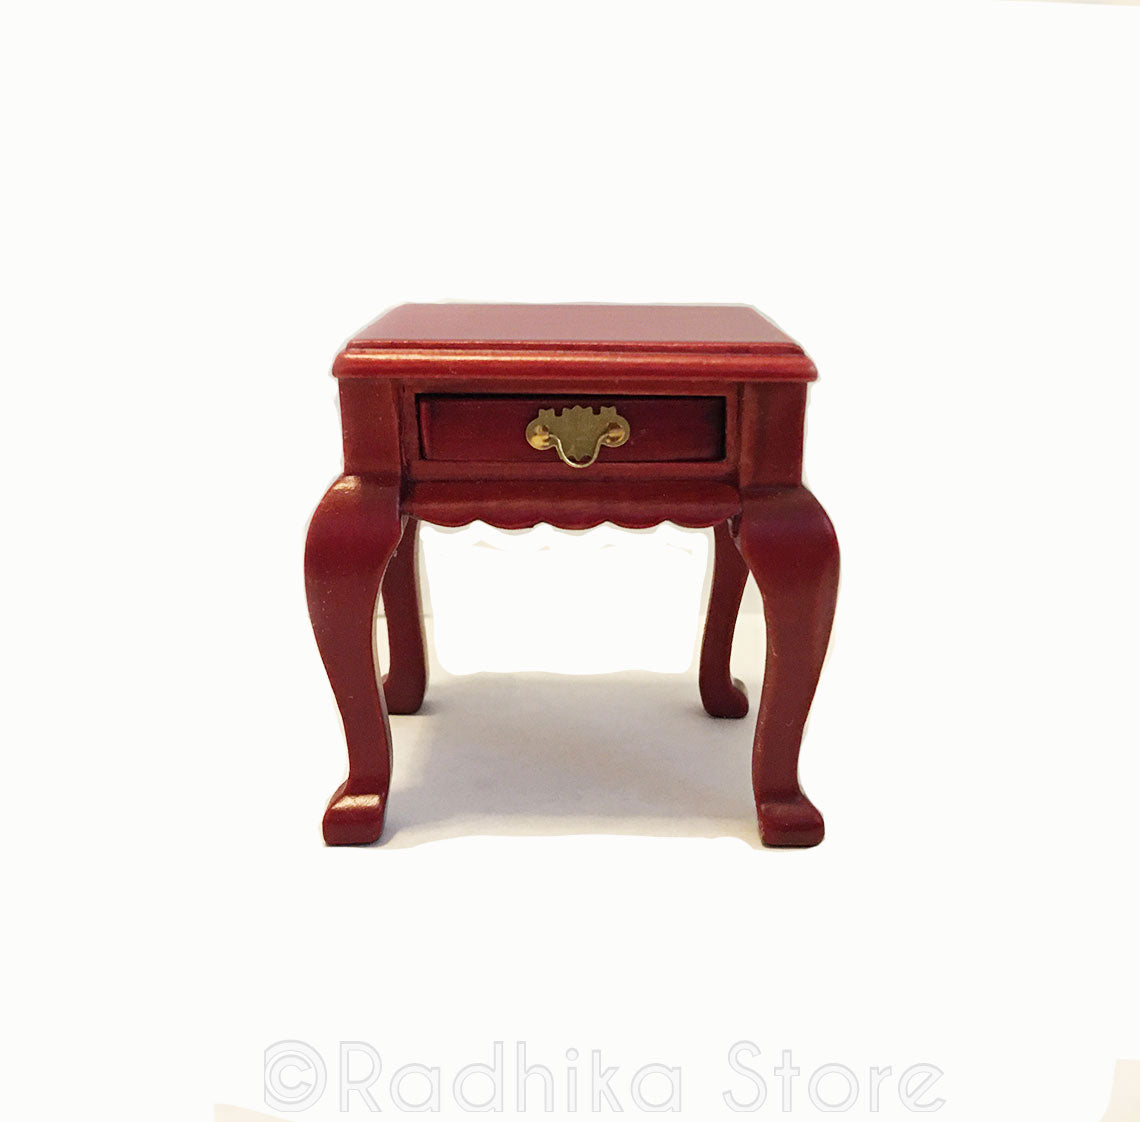 Fancy Chawki (Offering Table) or End Table With Drawer- Cherry Finish